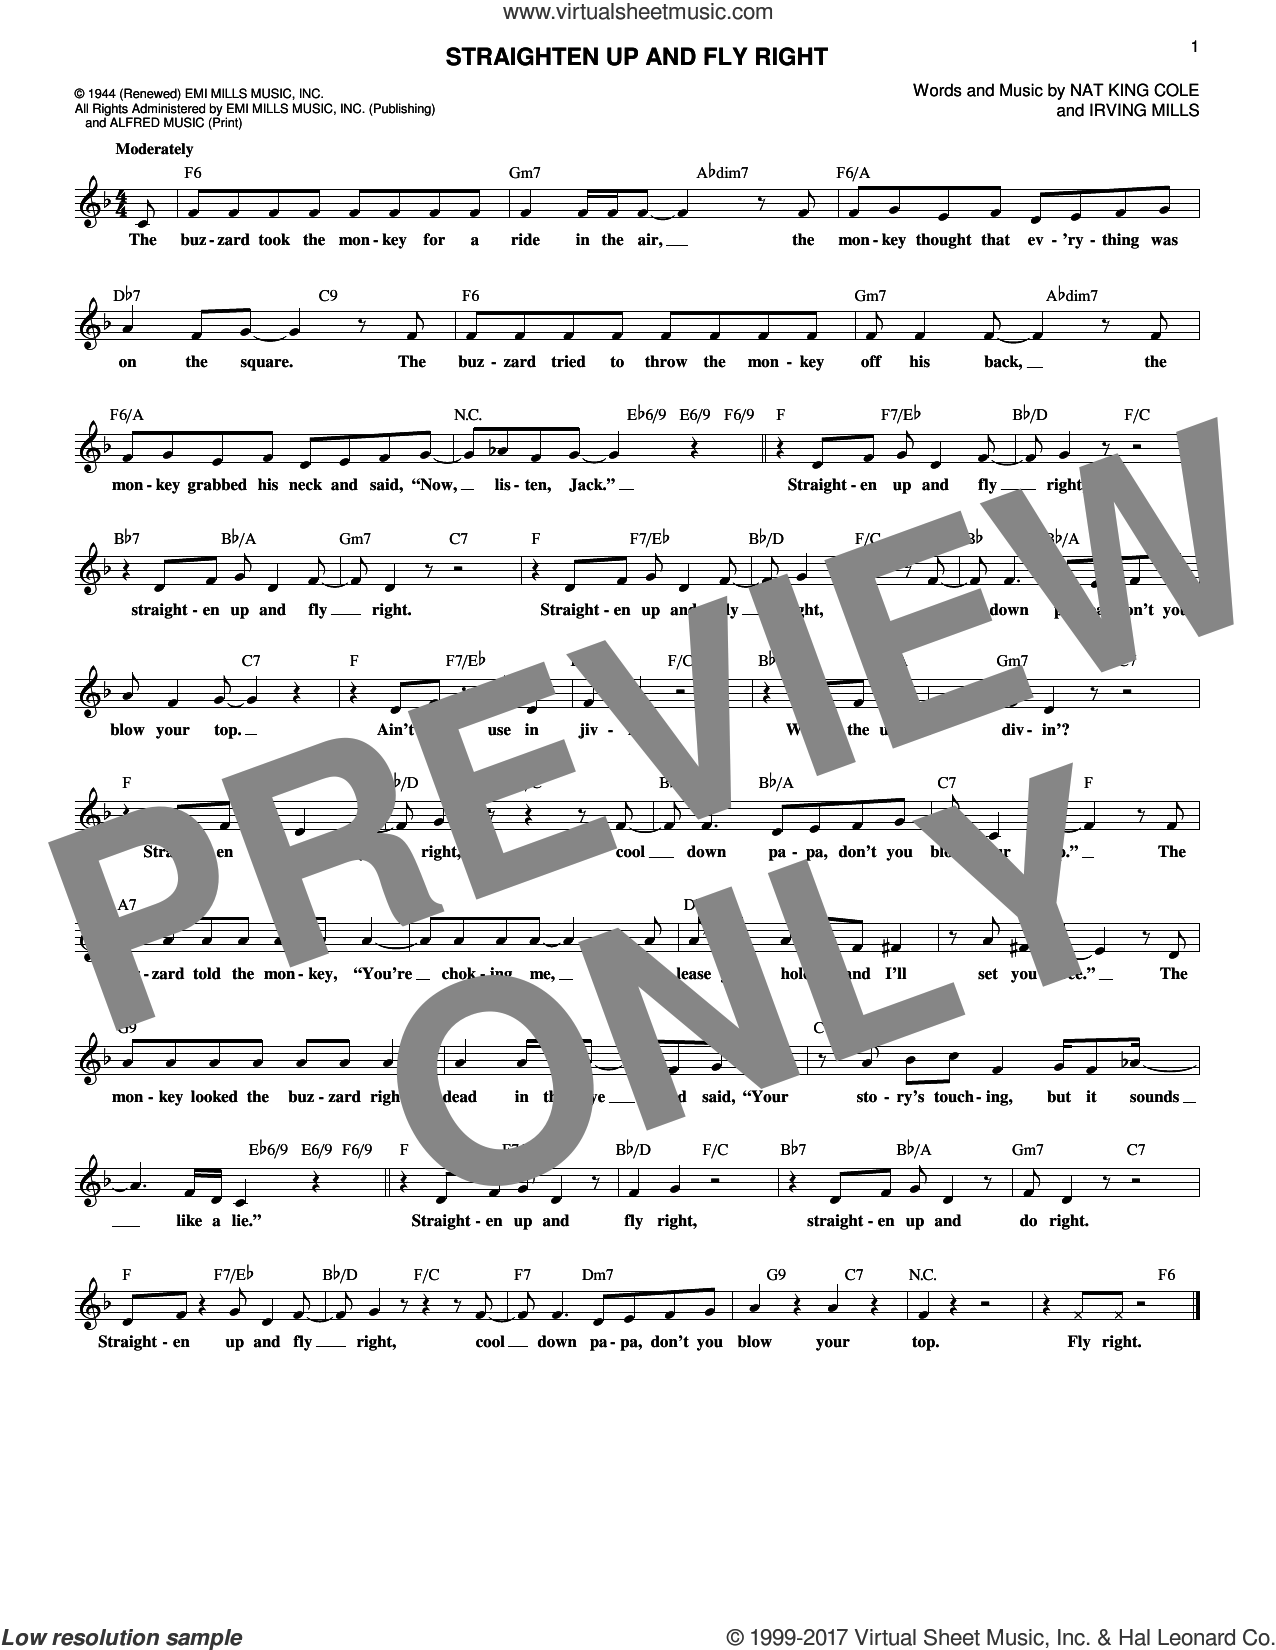 Straighten Up And Fly Right sheet music for voice and other instruments (fake book) by Nat King Cole and Irving Mills, intermediate skill level